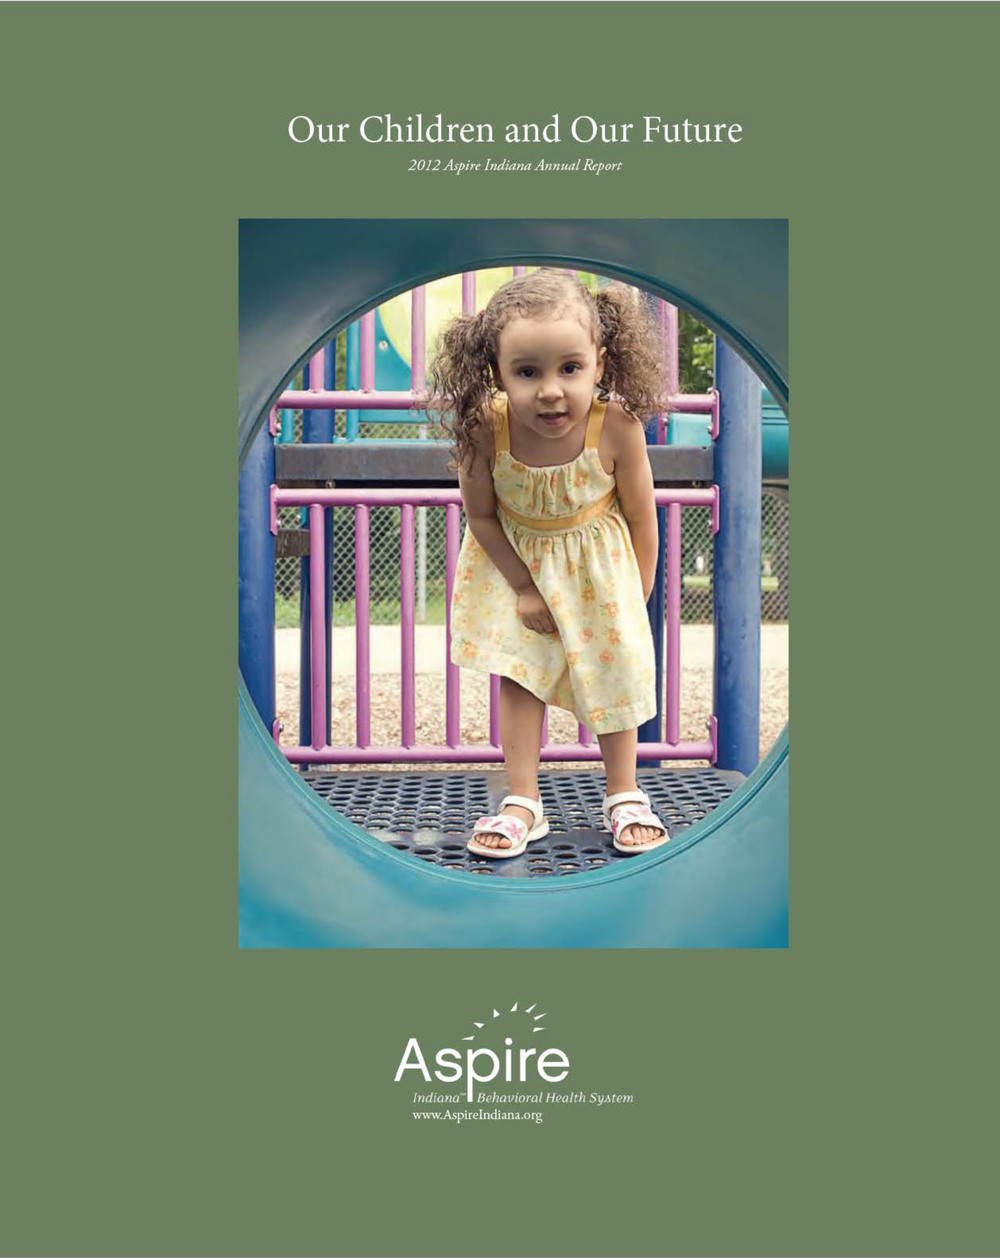 Aspire Indiana Annual Report 2012